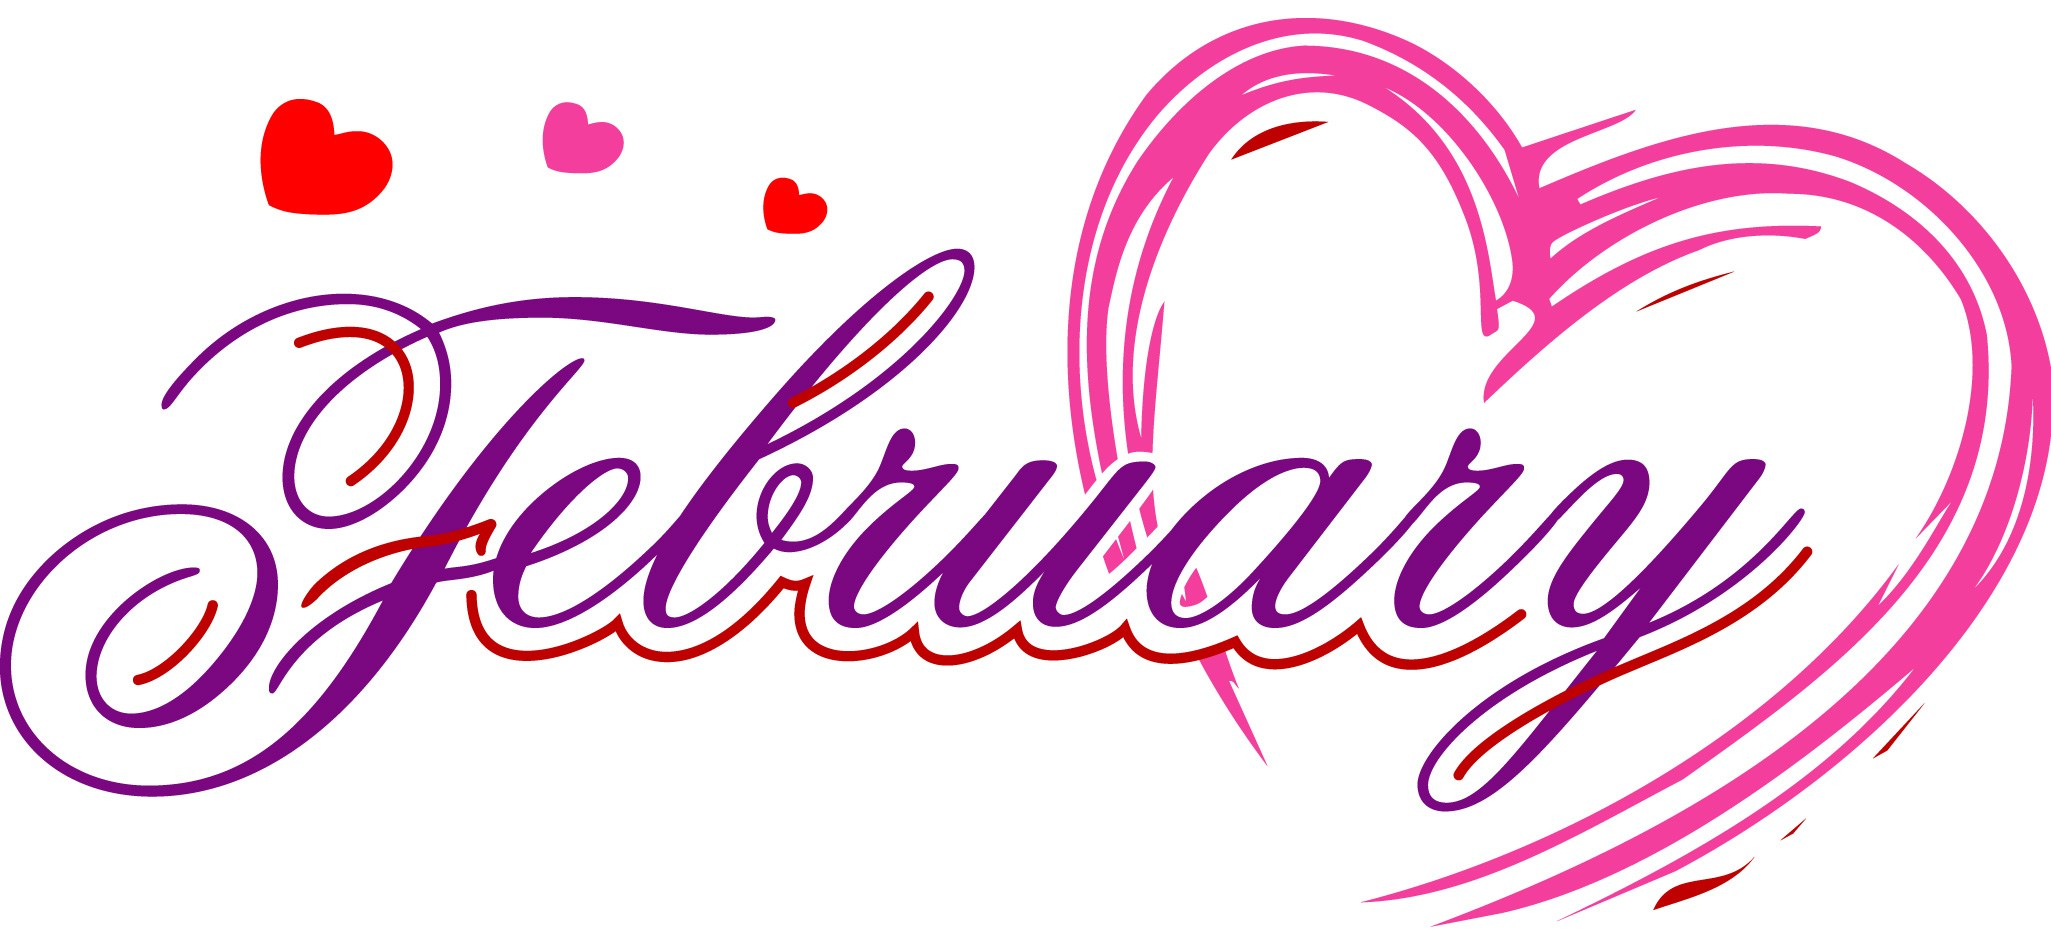 February clipart month. This mchs the county